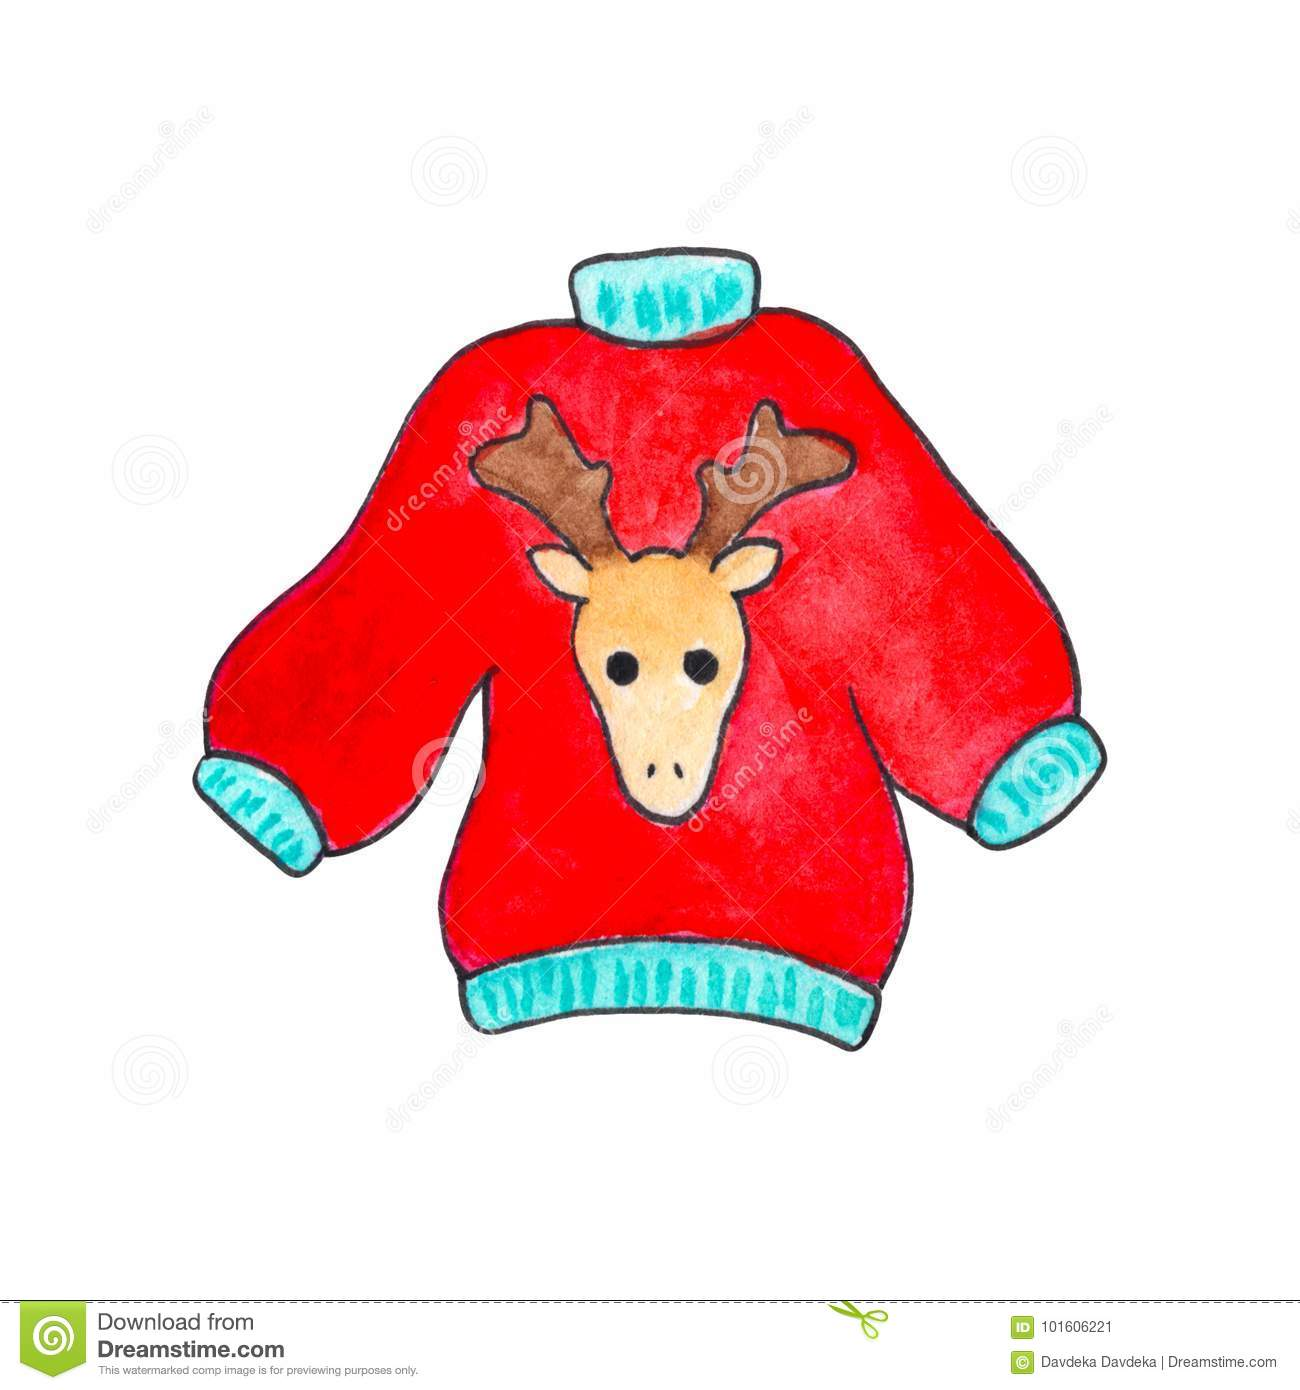 69d15b8d6f3b Red Sweater With Deer By Watercolor On White Background. Winter ...